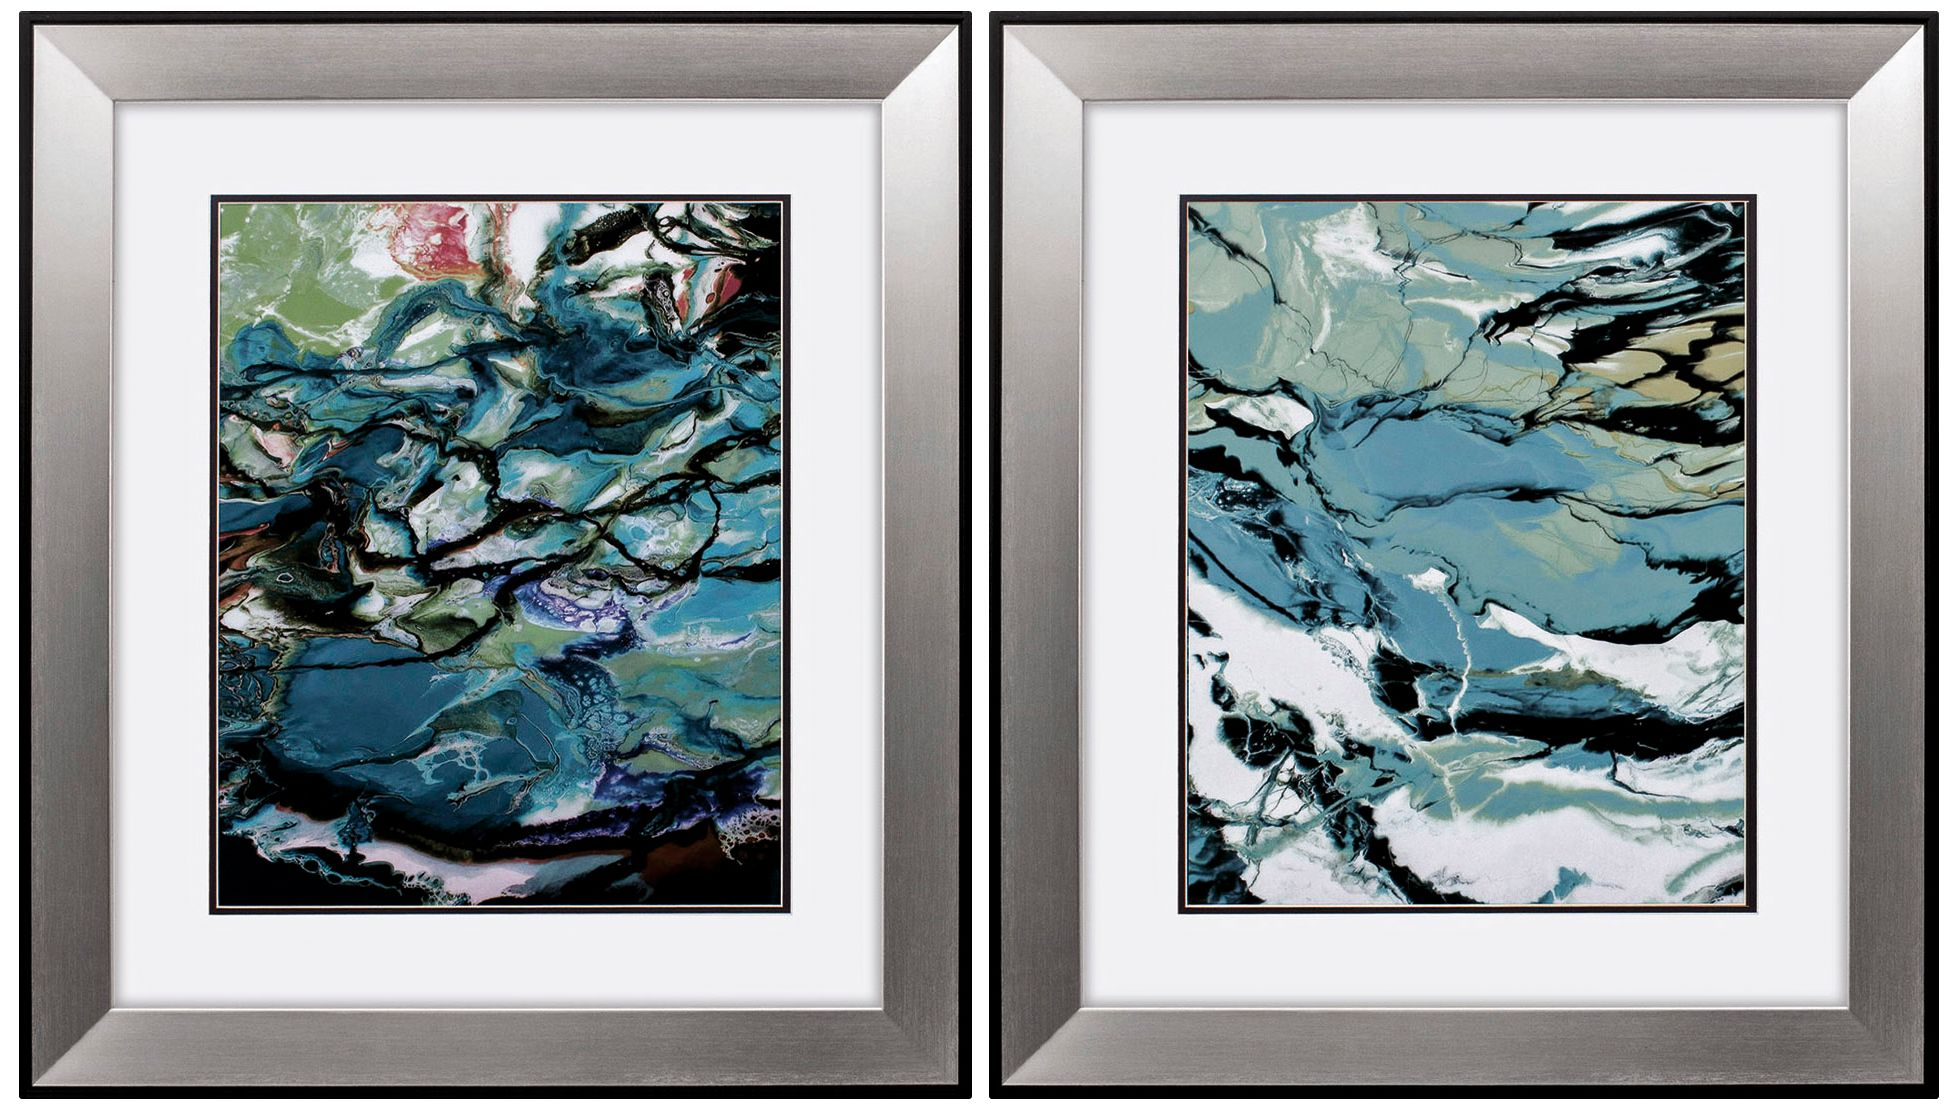 Marble 29  High 2-Piece Framed Wall Art Set  sc 1 st  L&s Plus & Wall Art - Plaques Panels Canvas u0026 More | Lamps Plus